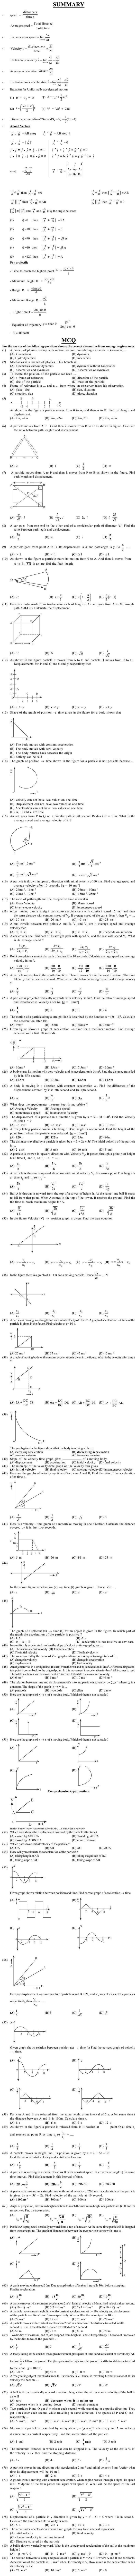 JEE and AIPMT Question Bank Physics - Kinematics